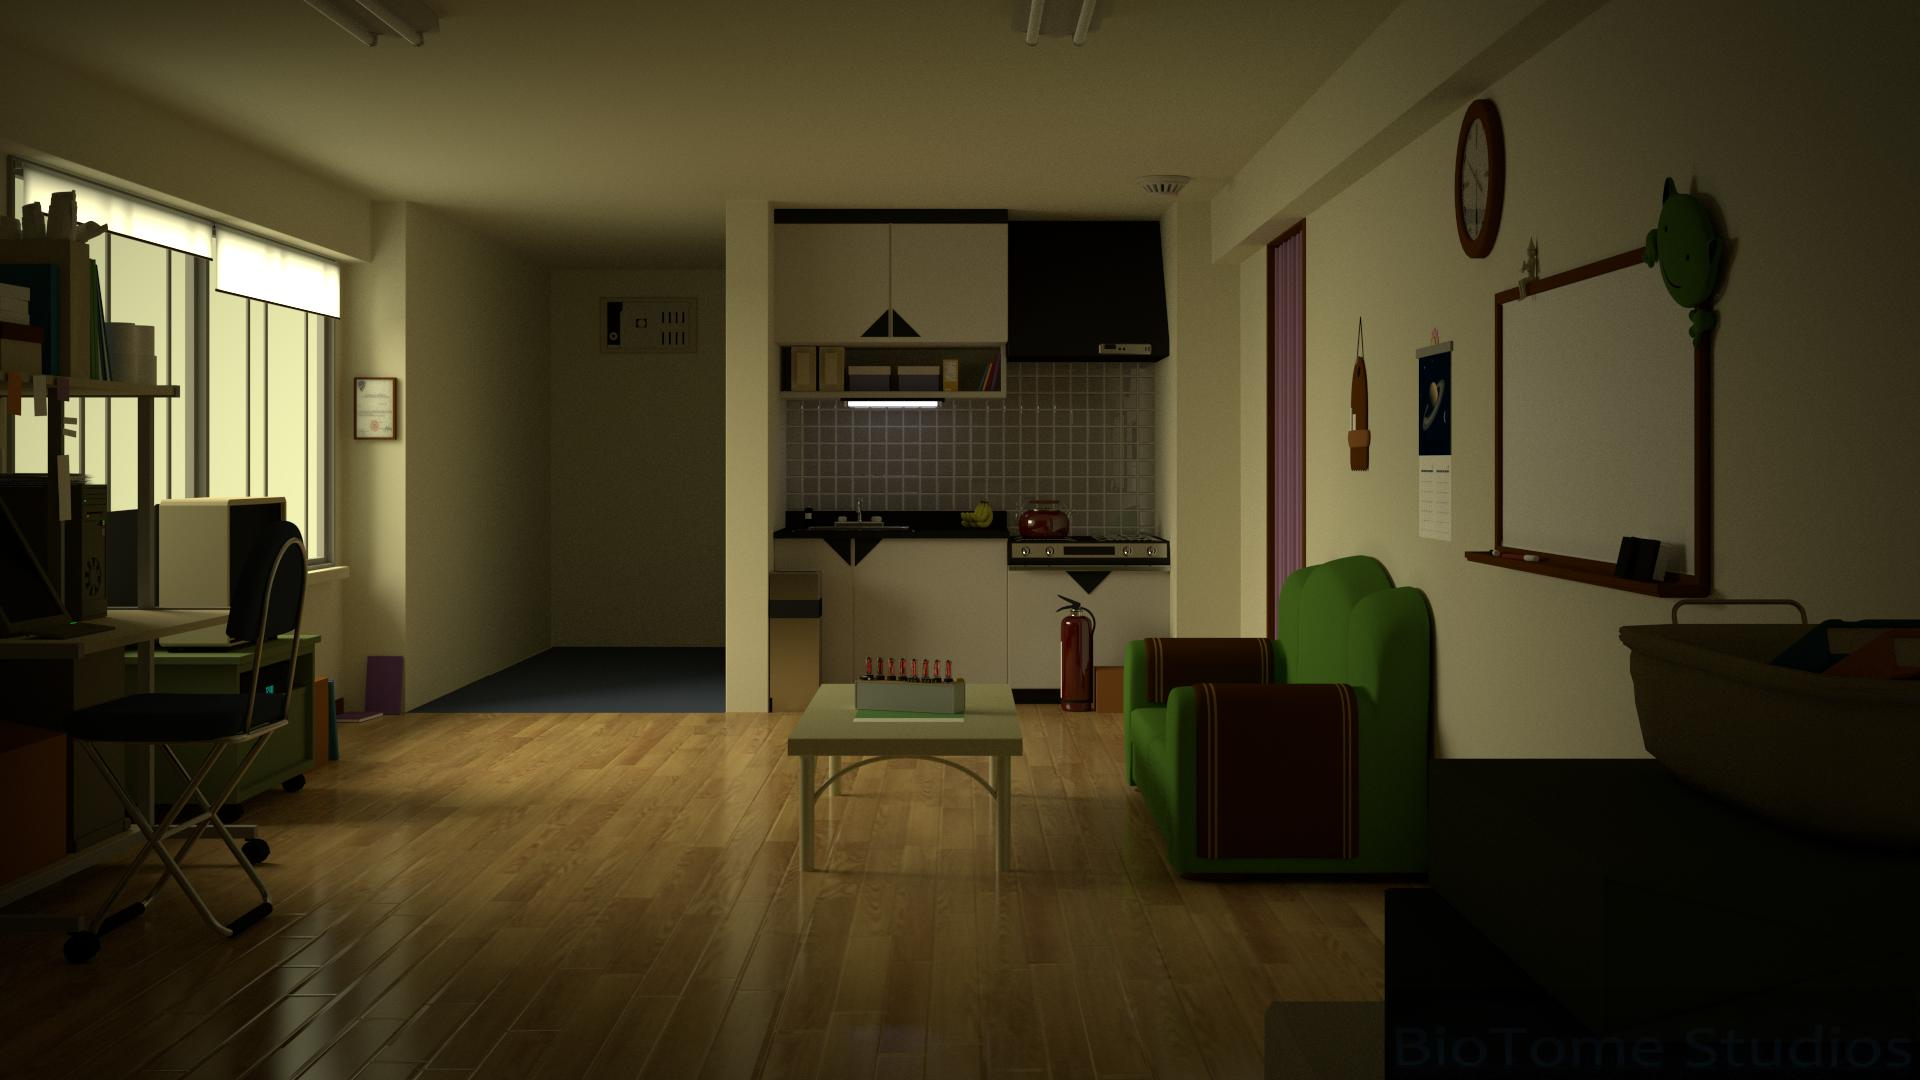 A Small Apartment With Only Kitchen Bedroom Bathroom And Living Room Three Of Them Being Close In The Middle